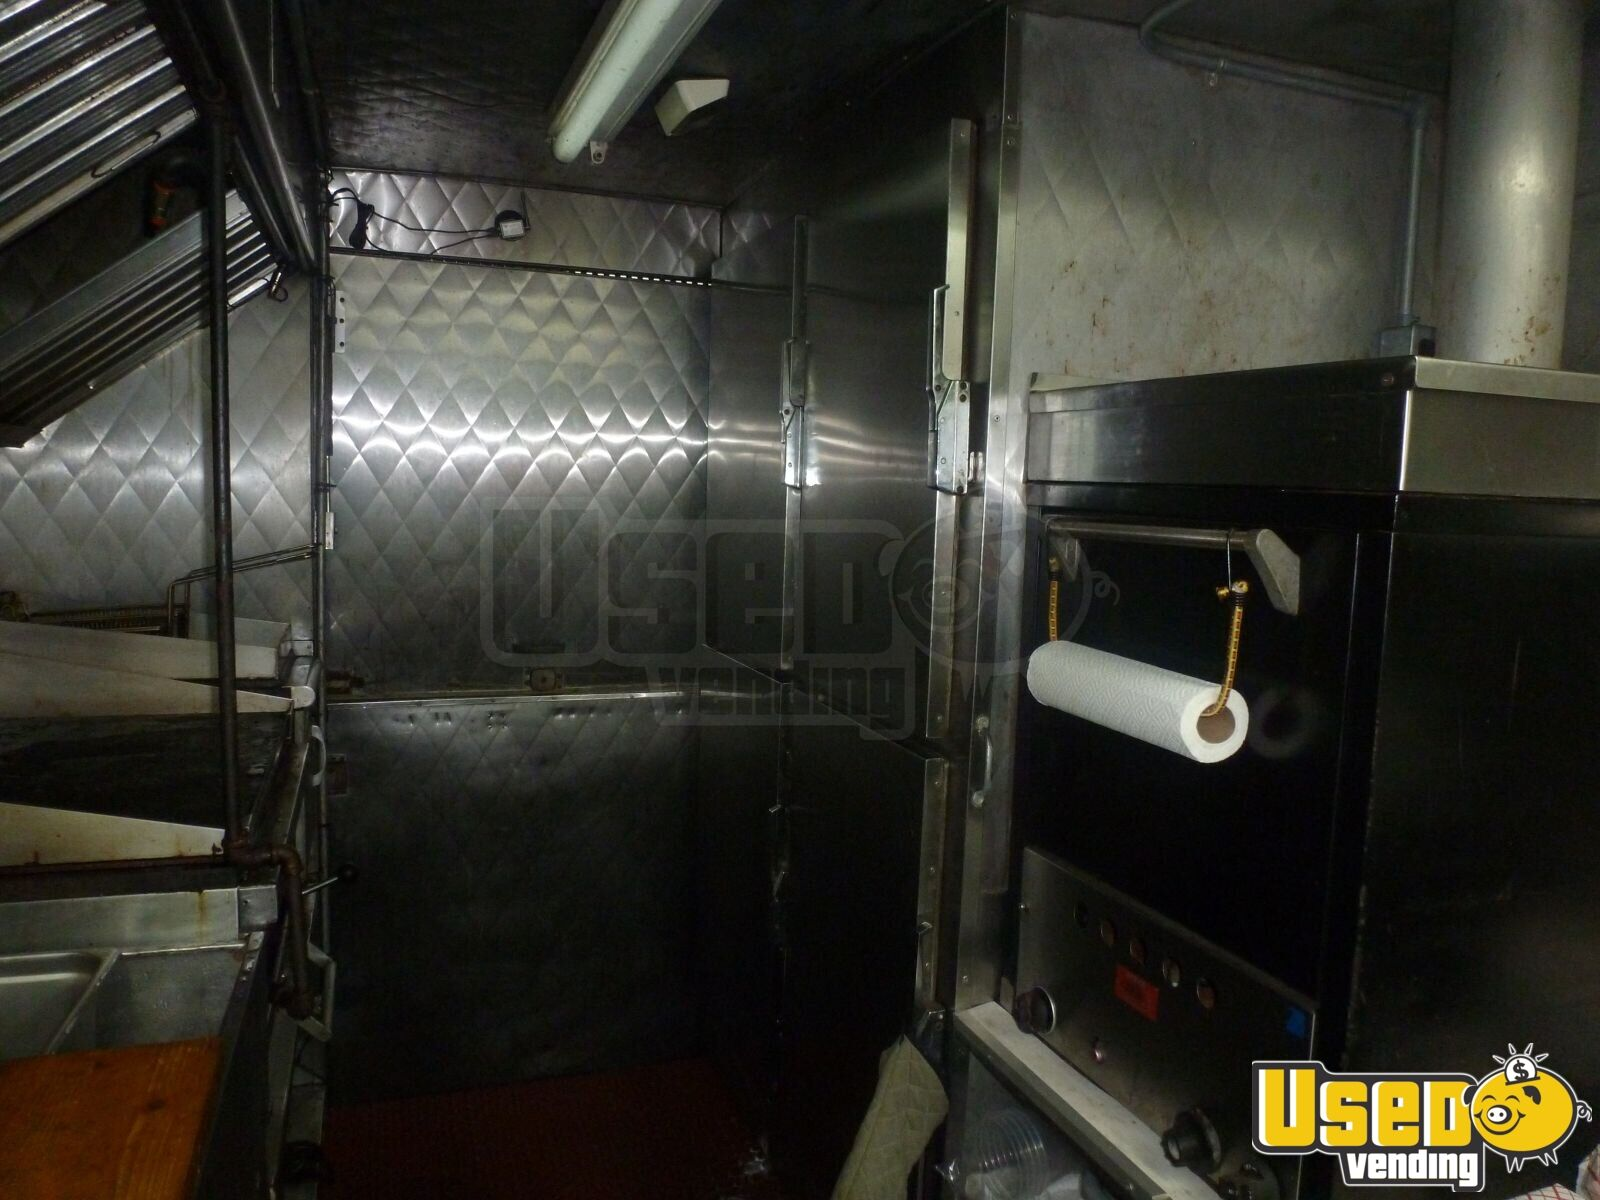 GM P130 Food Truck for Sale in Florida - 6